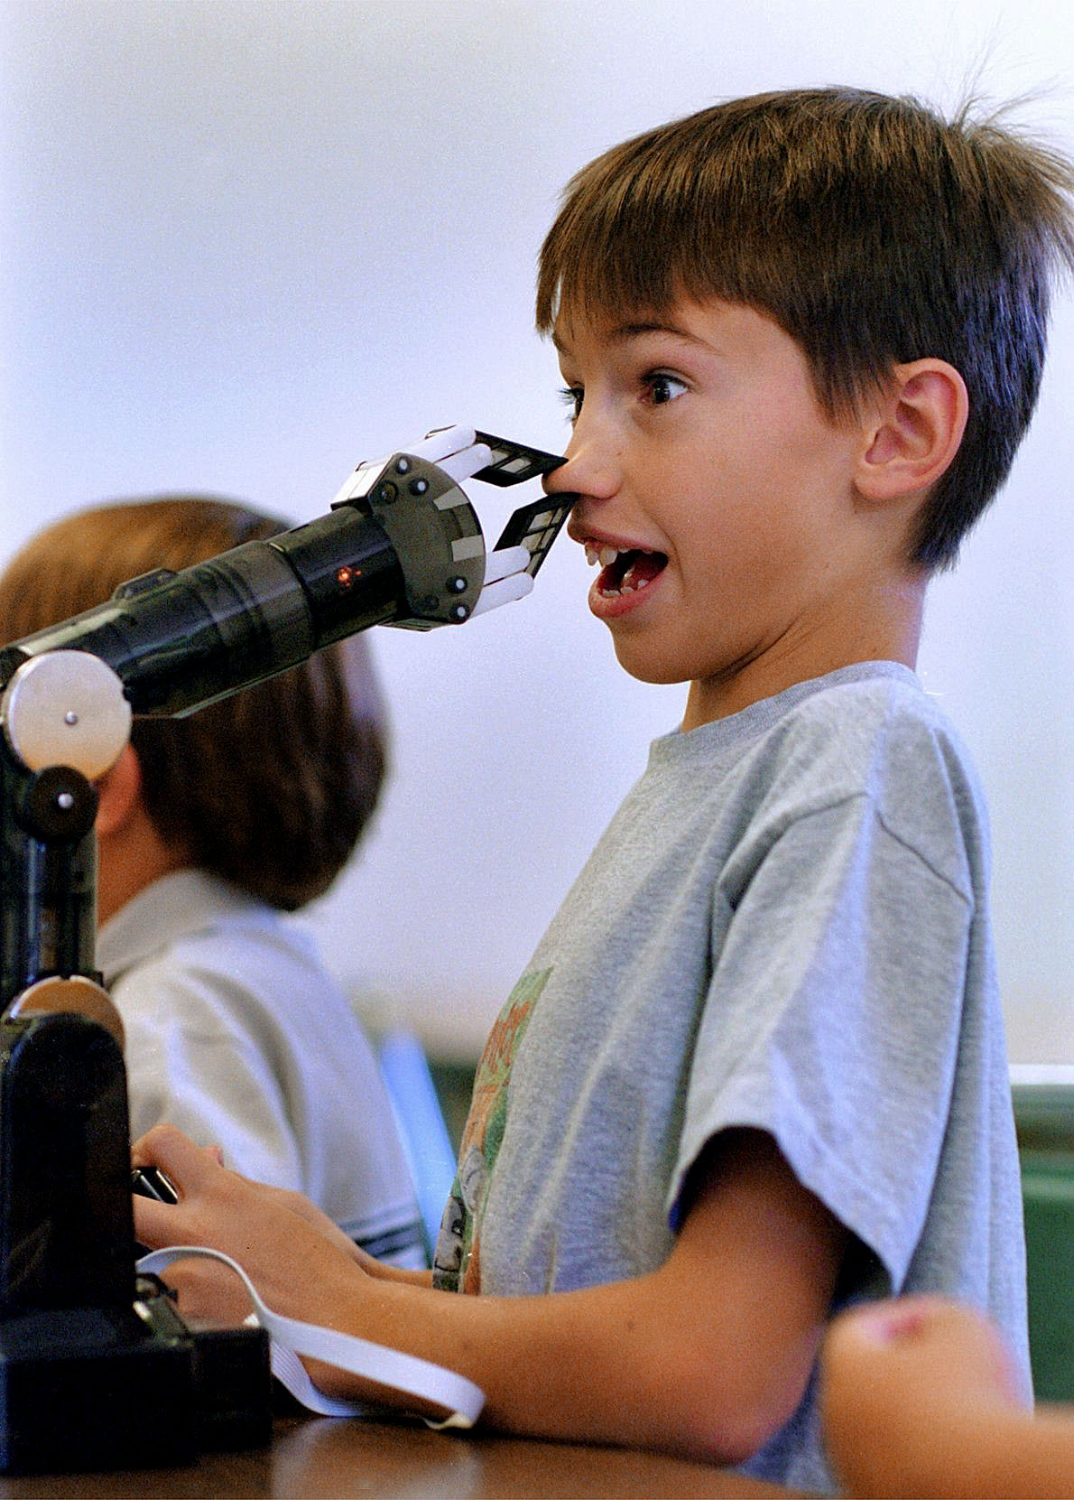 """Jason Kaye 9, pinches his nose in the grip of a mechanical robotic arm at the R.G. Smith Clubhouse in Folsom on Thursday July 25, 2002. """"Mad Scientist"""" Jason Turner put on a science class themed """"Machine Mania"""" and featured simple machines."""